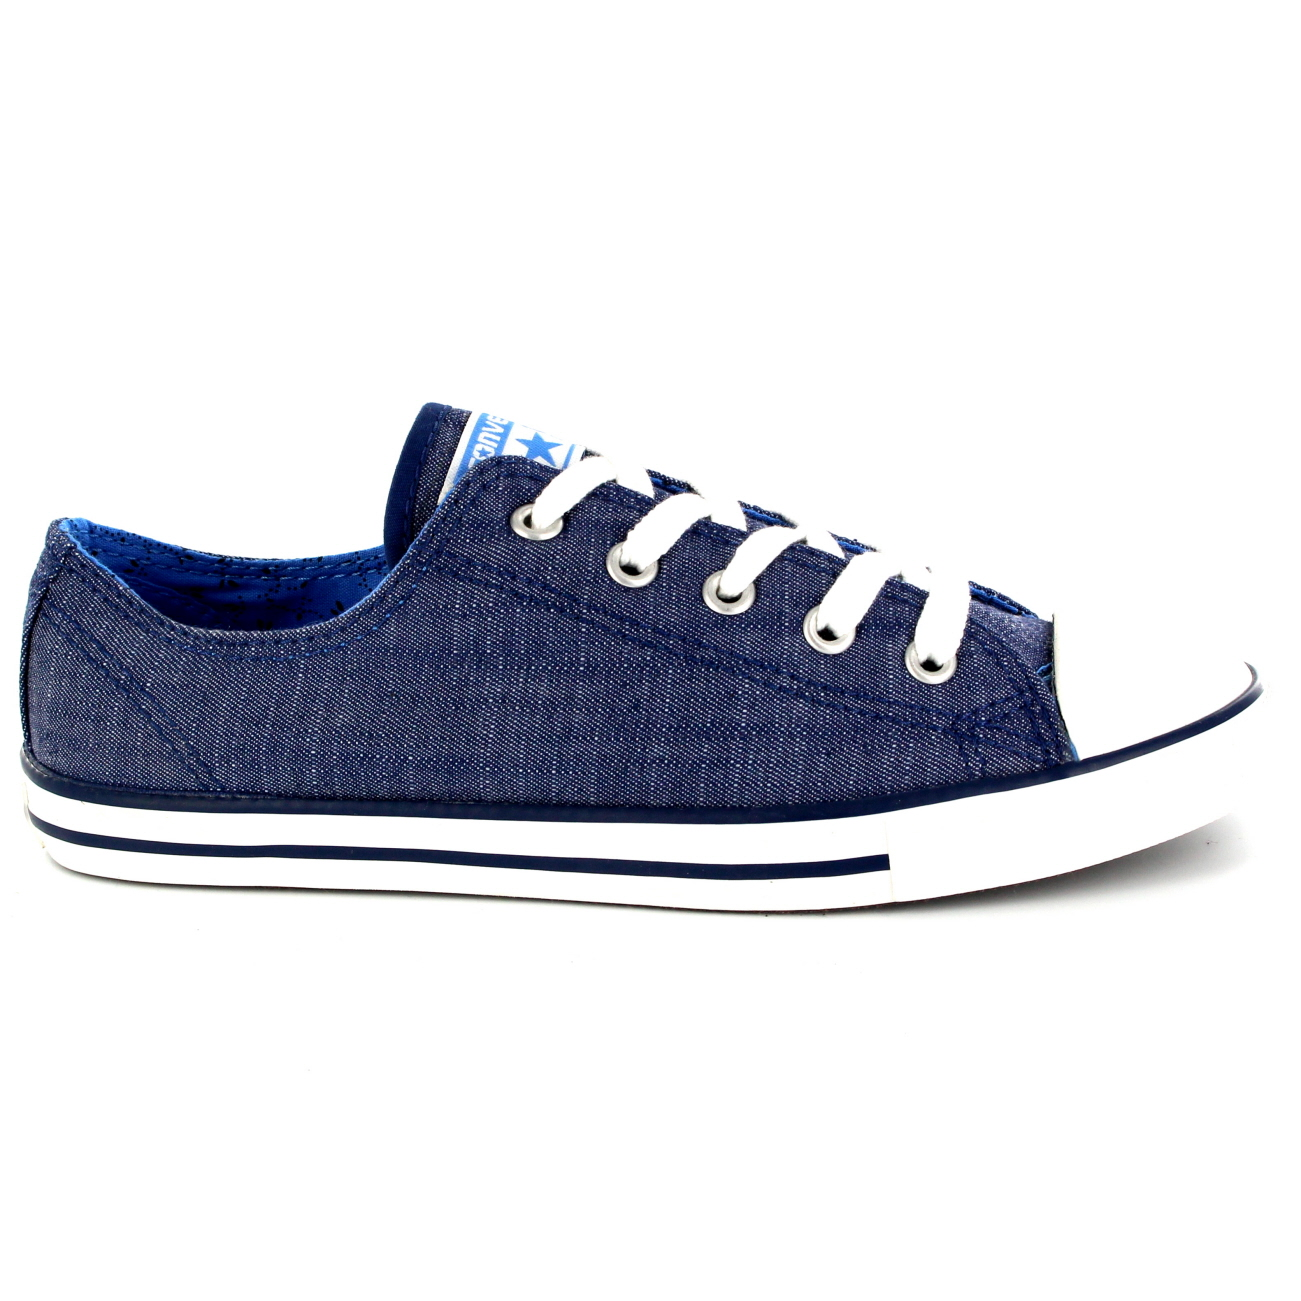 Converse All Stars Dainty Ensign Ladies Trainers